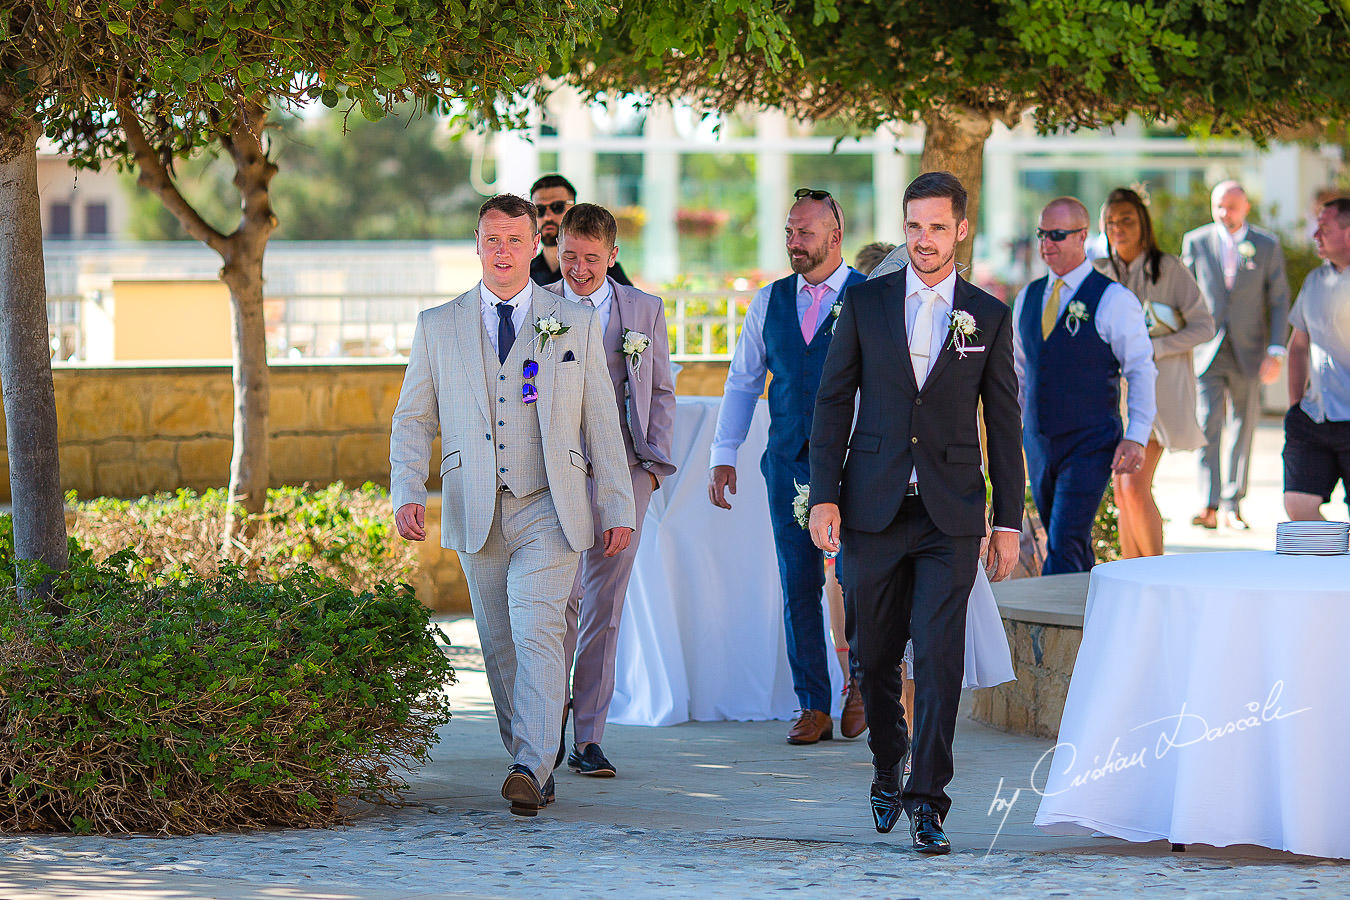 Groom arrival, moments captured by Cristian Dascalu during an elegant Aphrodite Hills Wedding in Cyprus.